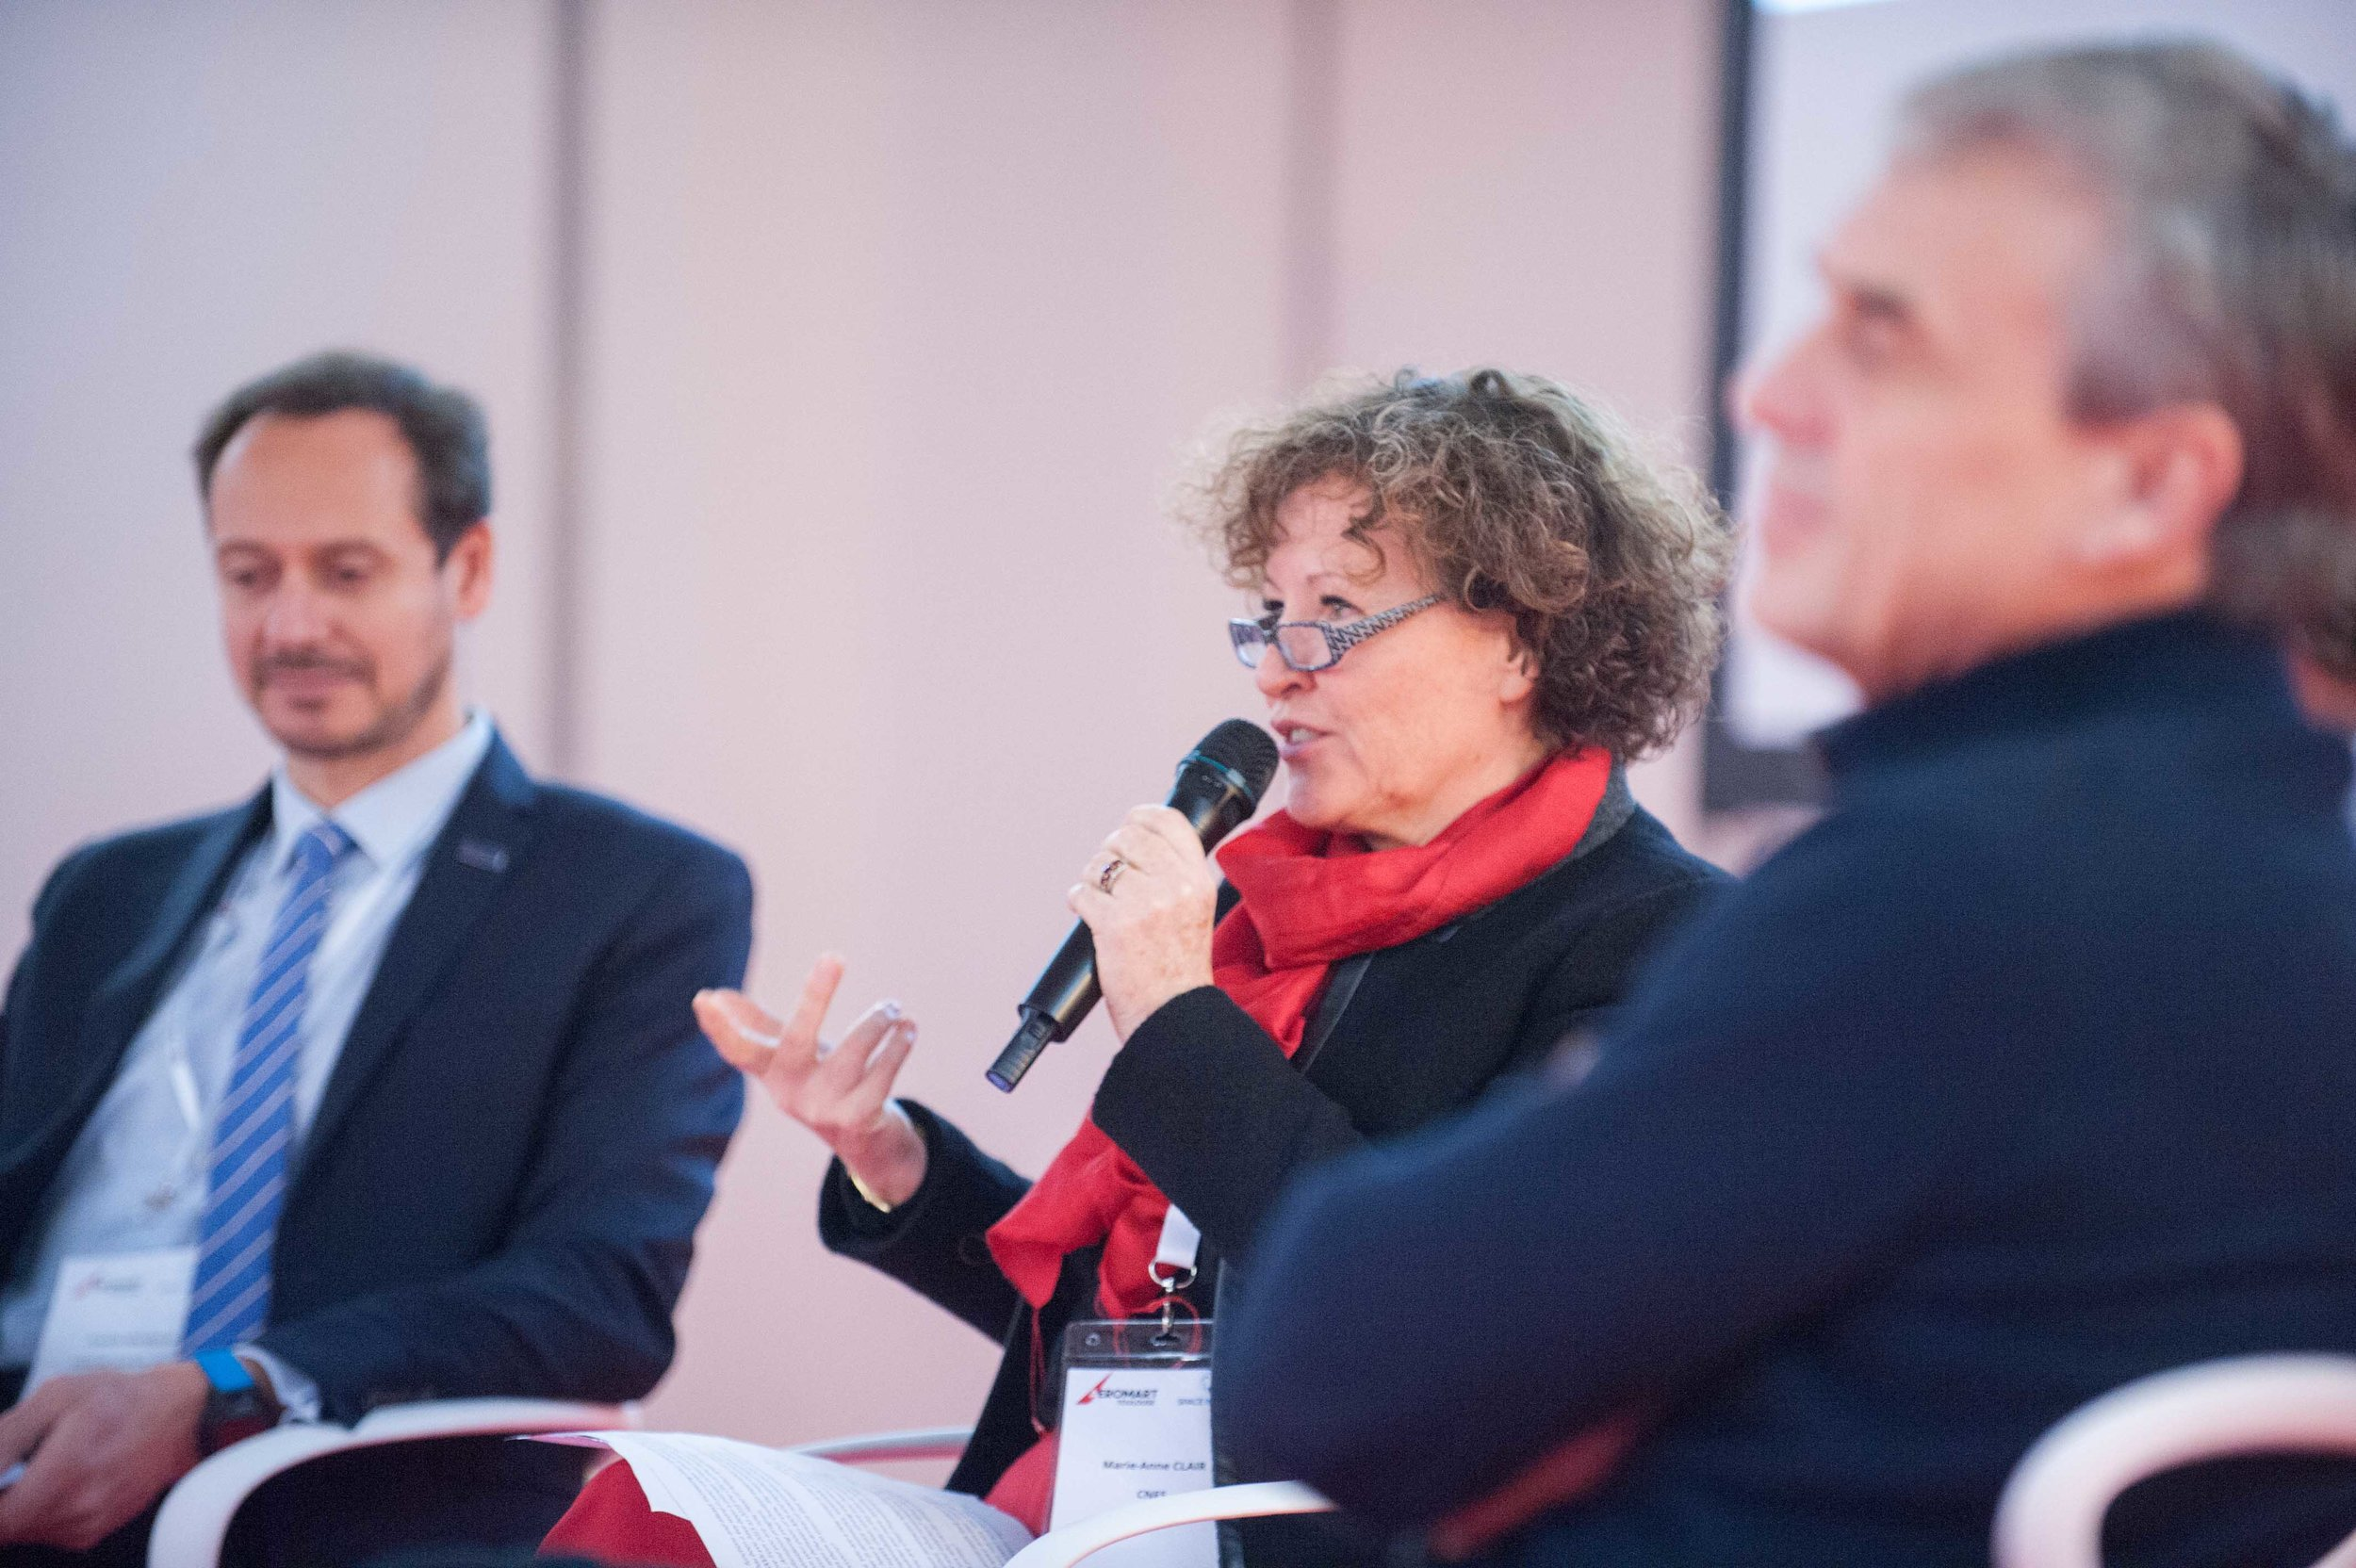 Marie-Anne Claire - CNES moderates a panel discussion at Aeromart Toulouse 2018